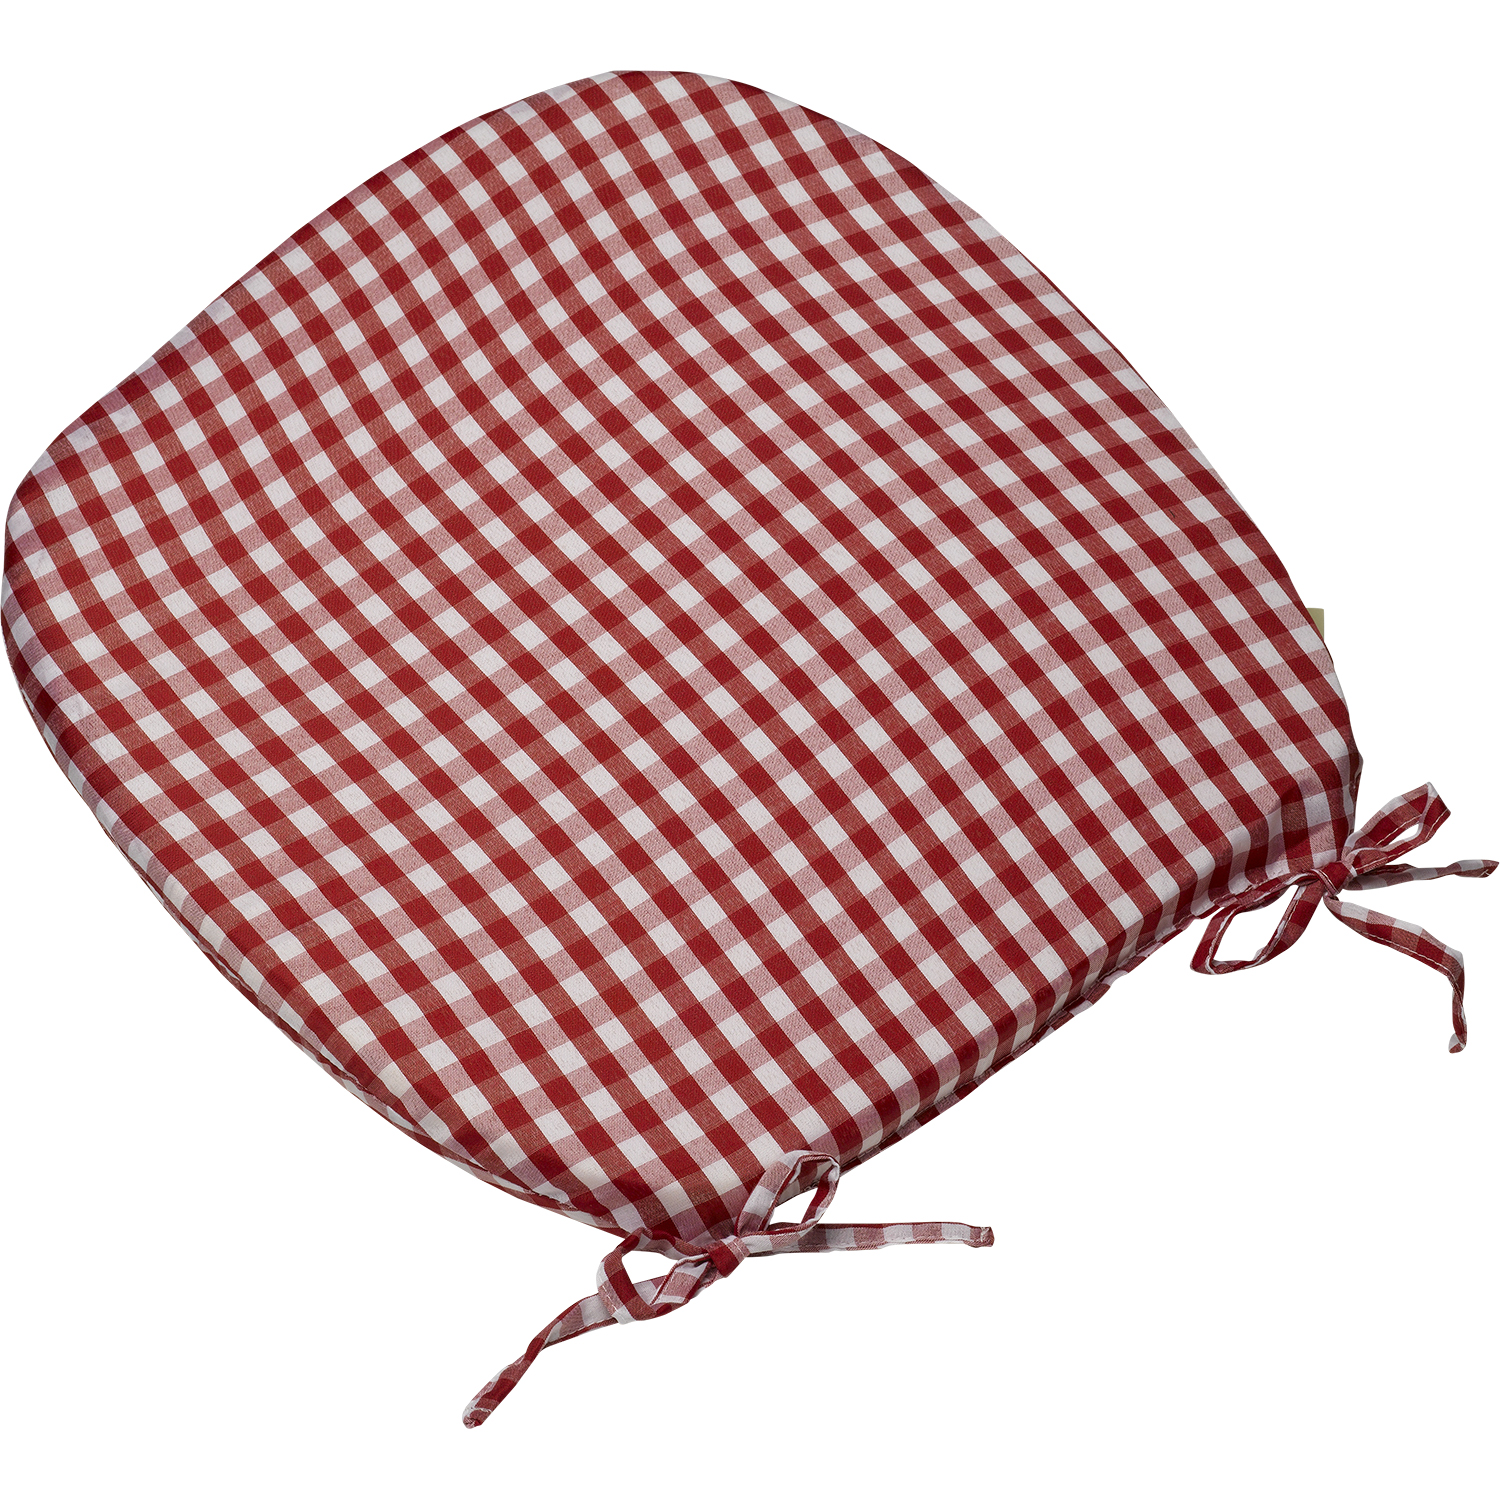 Elegant Tie On Rounded Gingham Chair Seat Pad Cushion